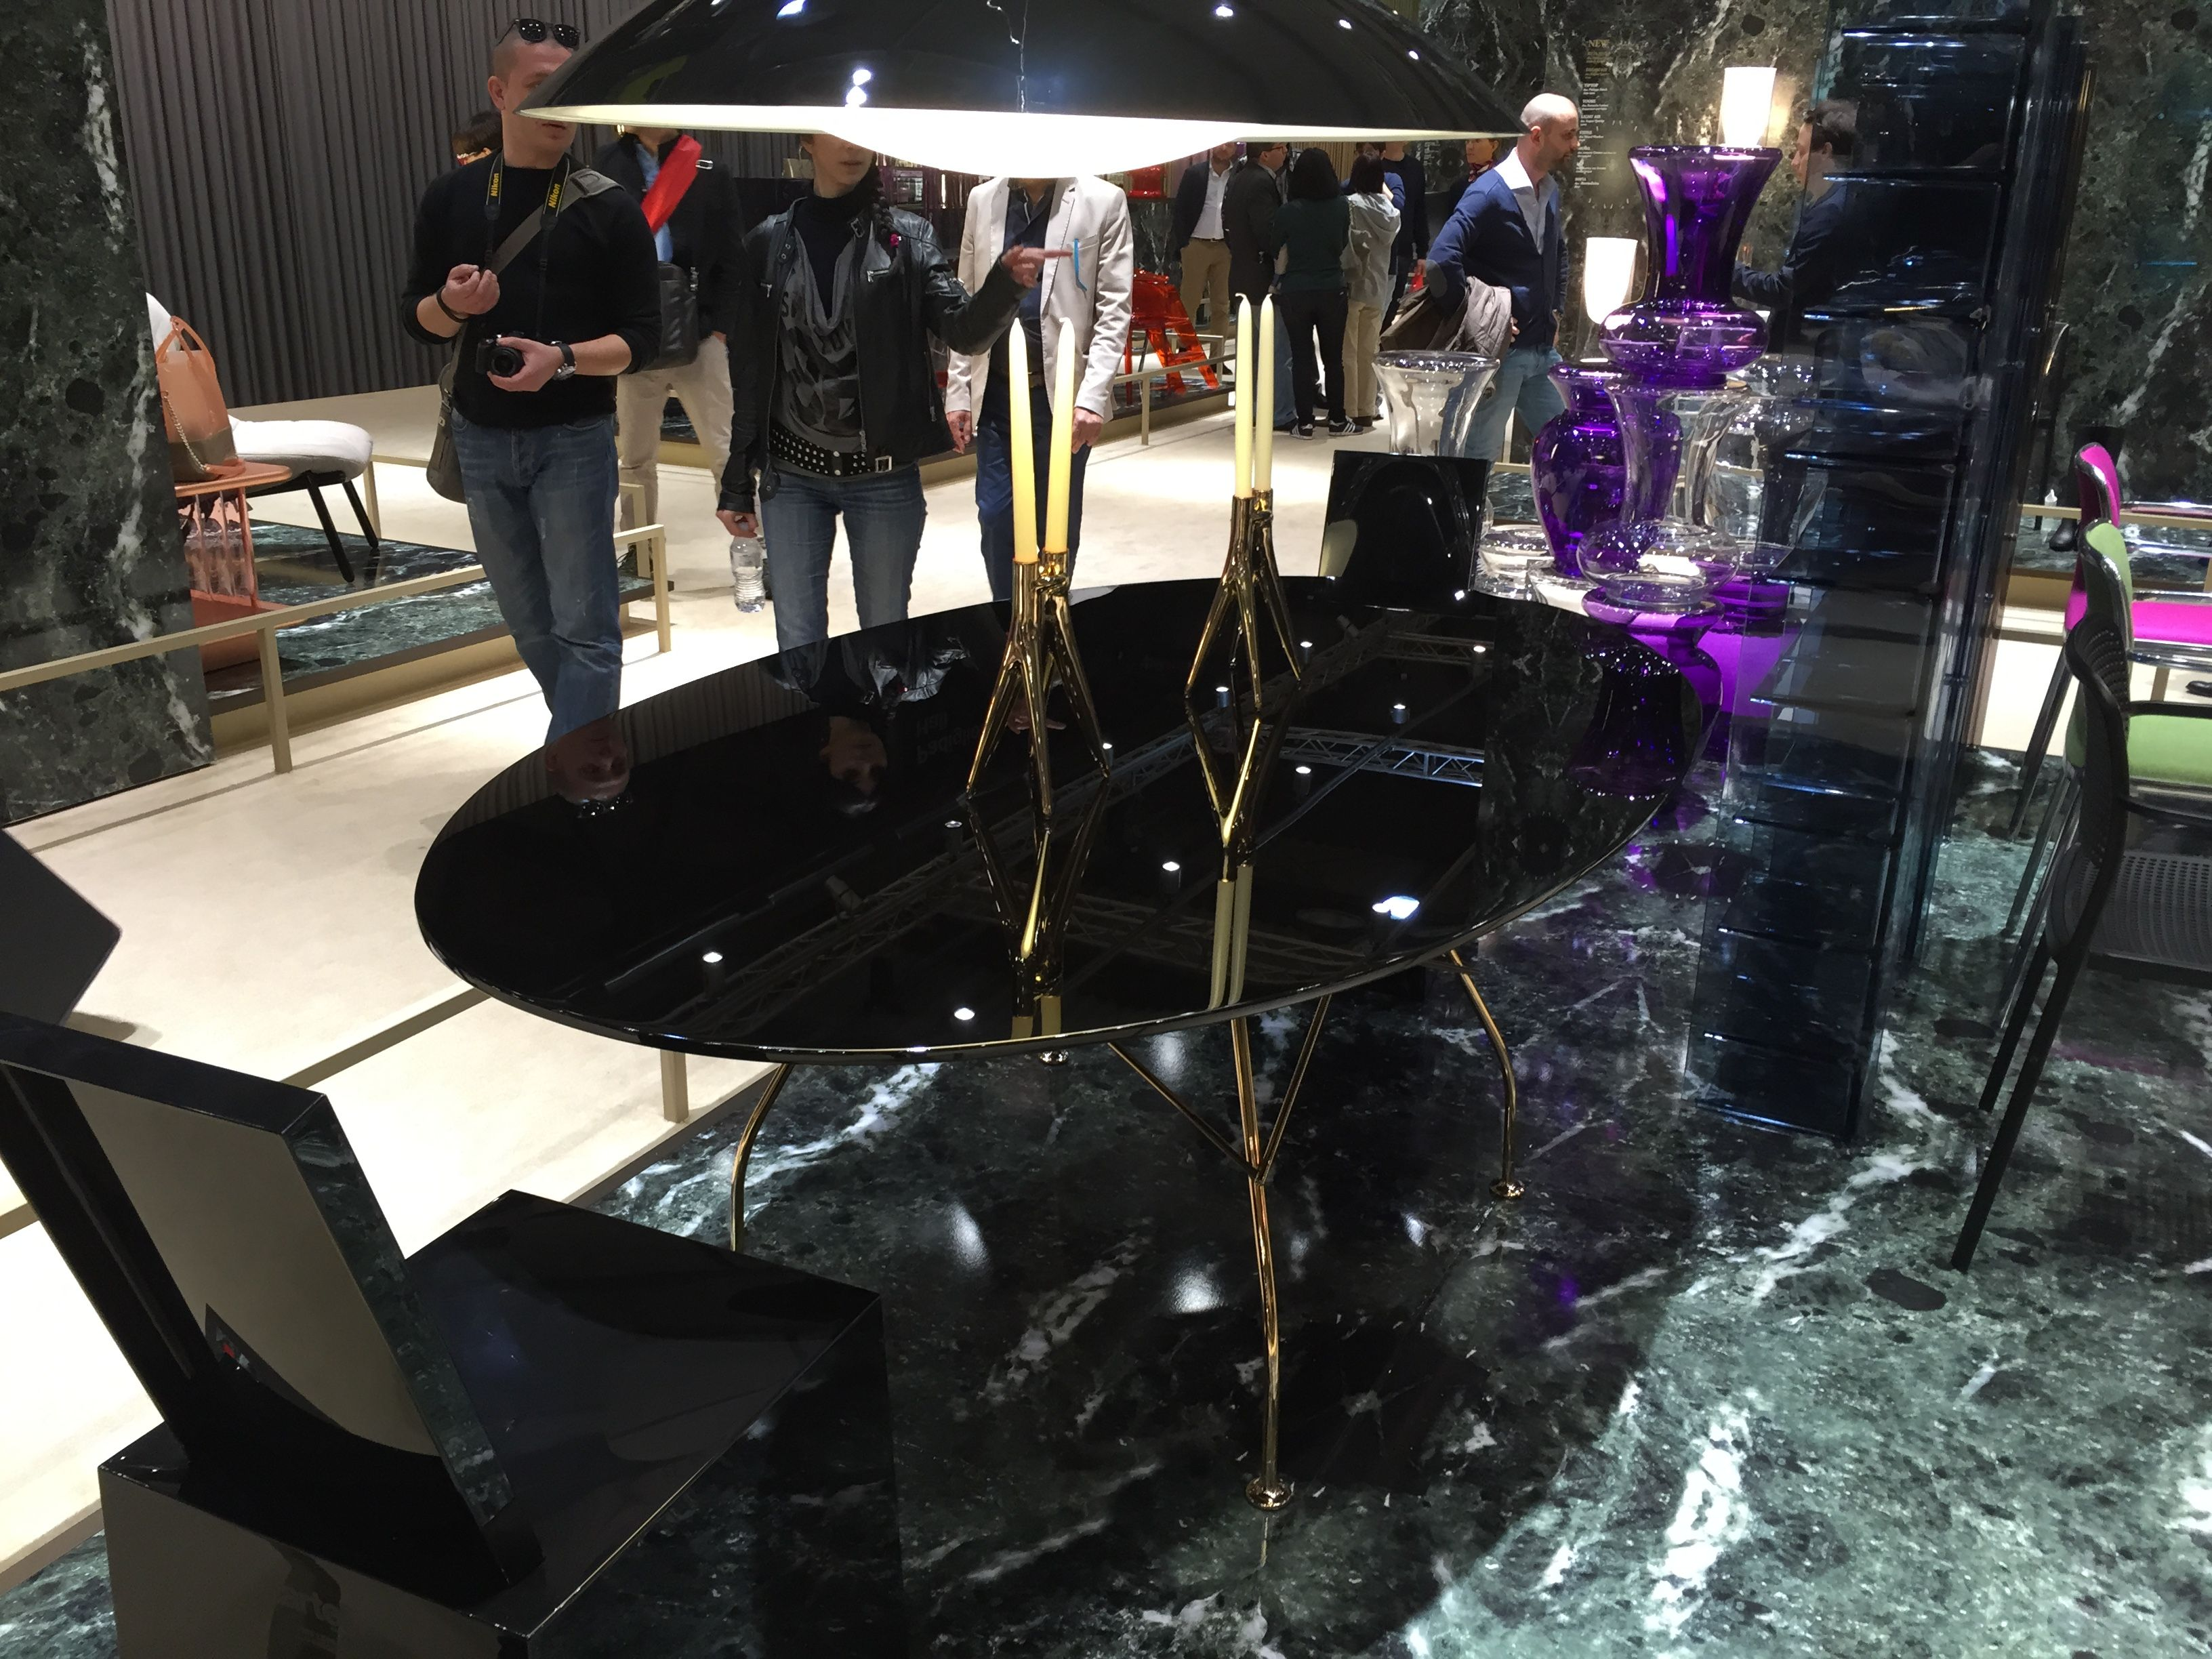 Isaloni2015 #kartell tavolo glossy salone del mobile 2015 pinterest